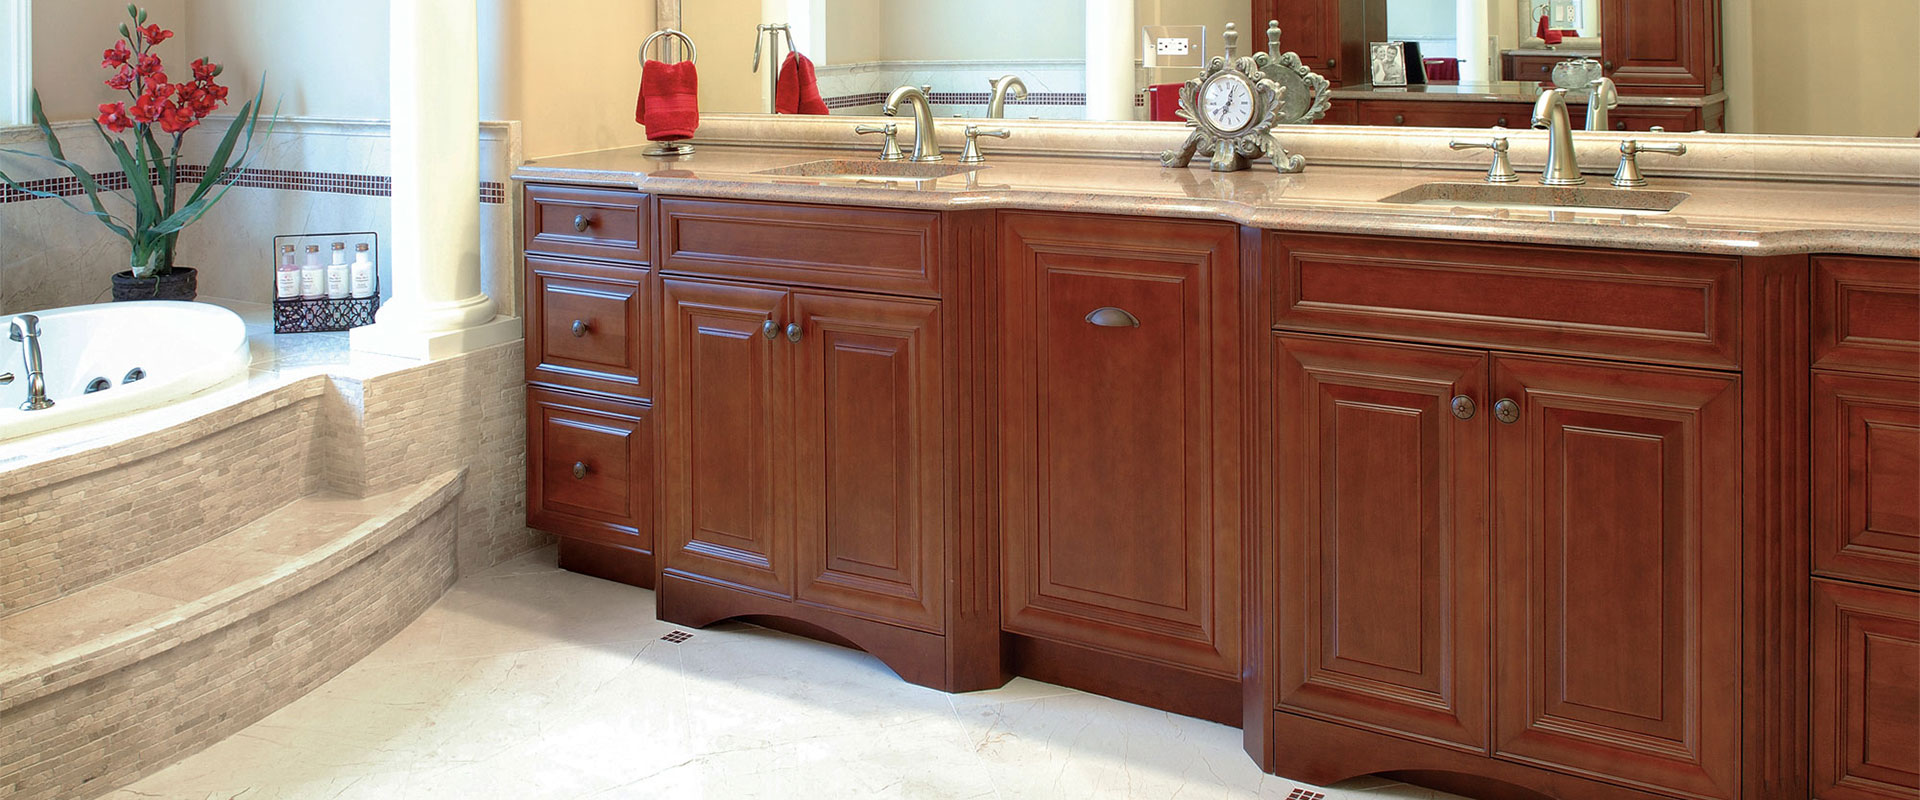 kitchen c island cart cabinets granite countertops remodeling tampa fl beautiful